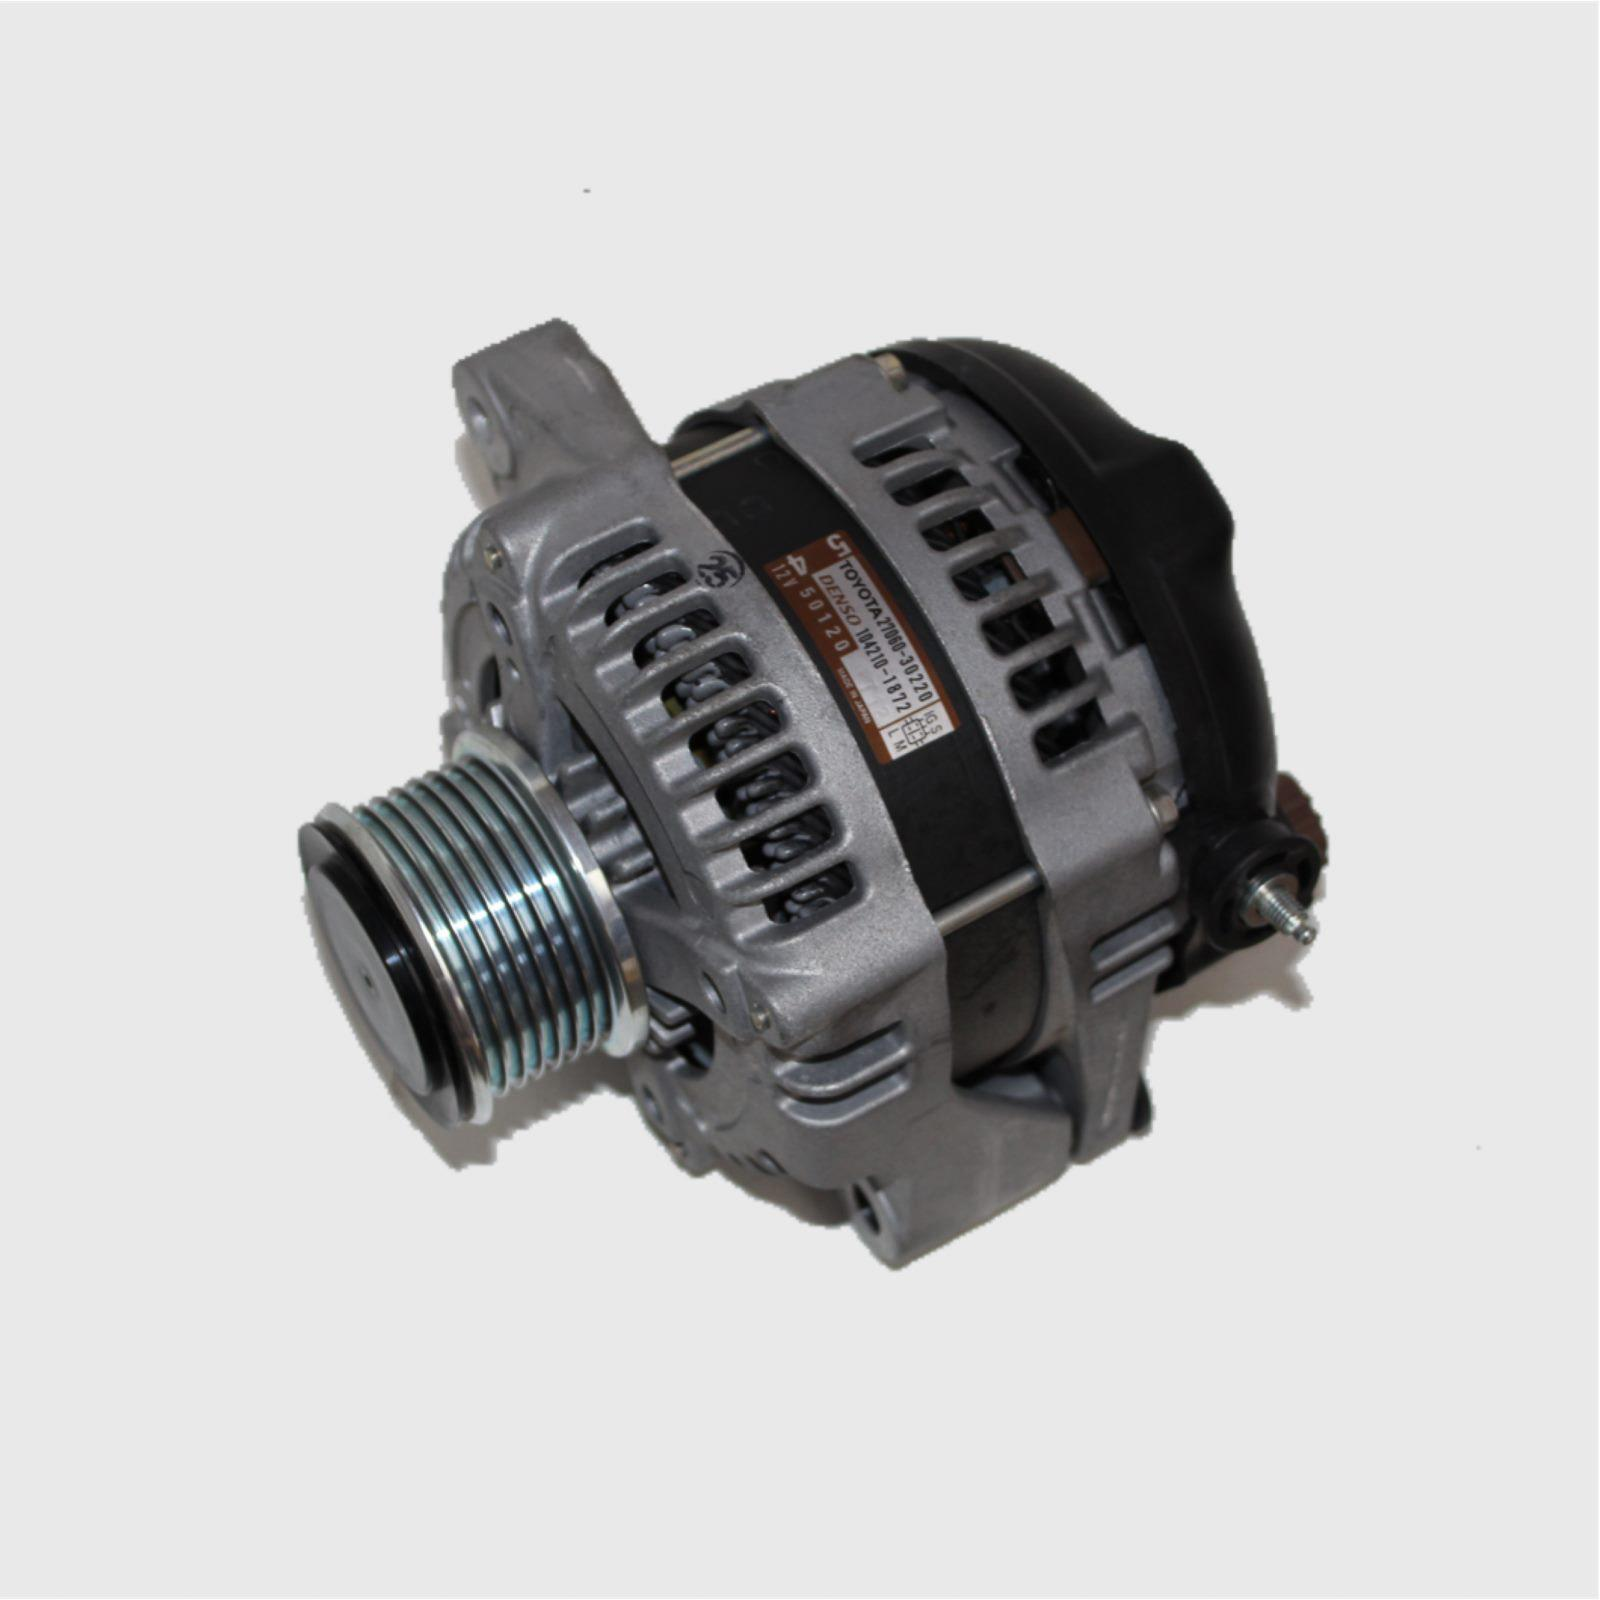 TOYOTA HIACE, Alternator, DIESEL, 3.0, 1KD-FTV, TURBO, KDH, 09/06-